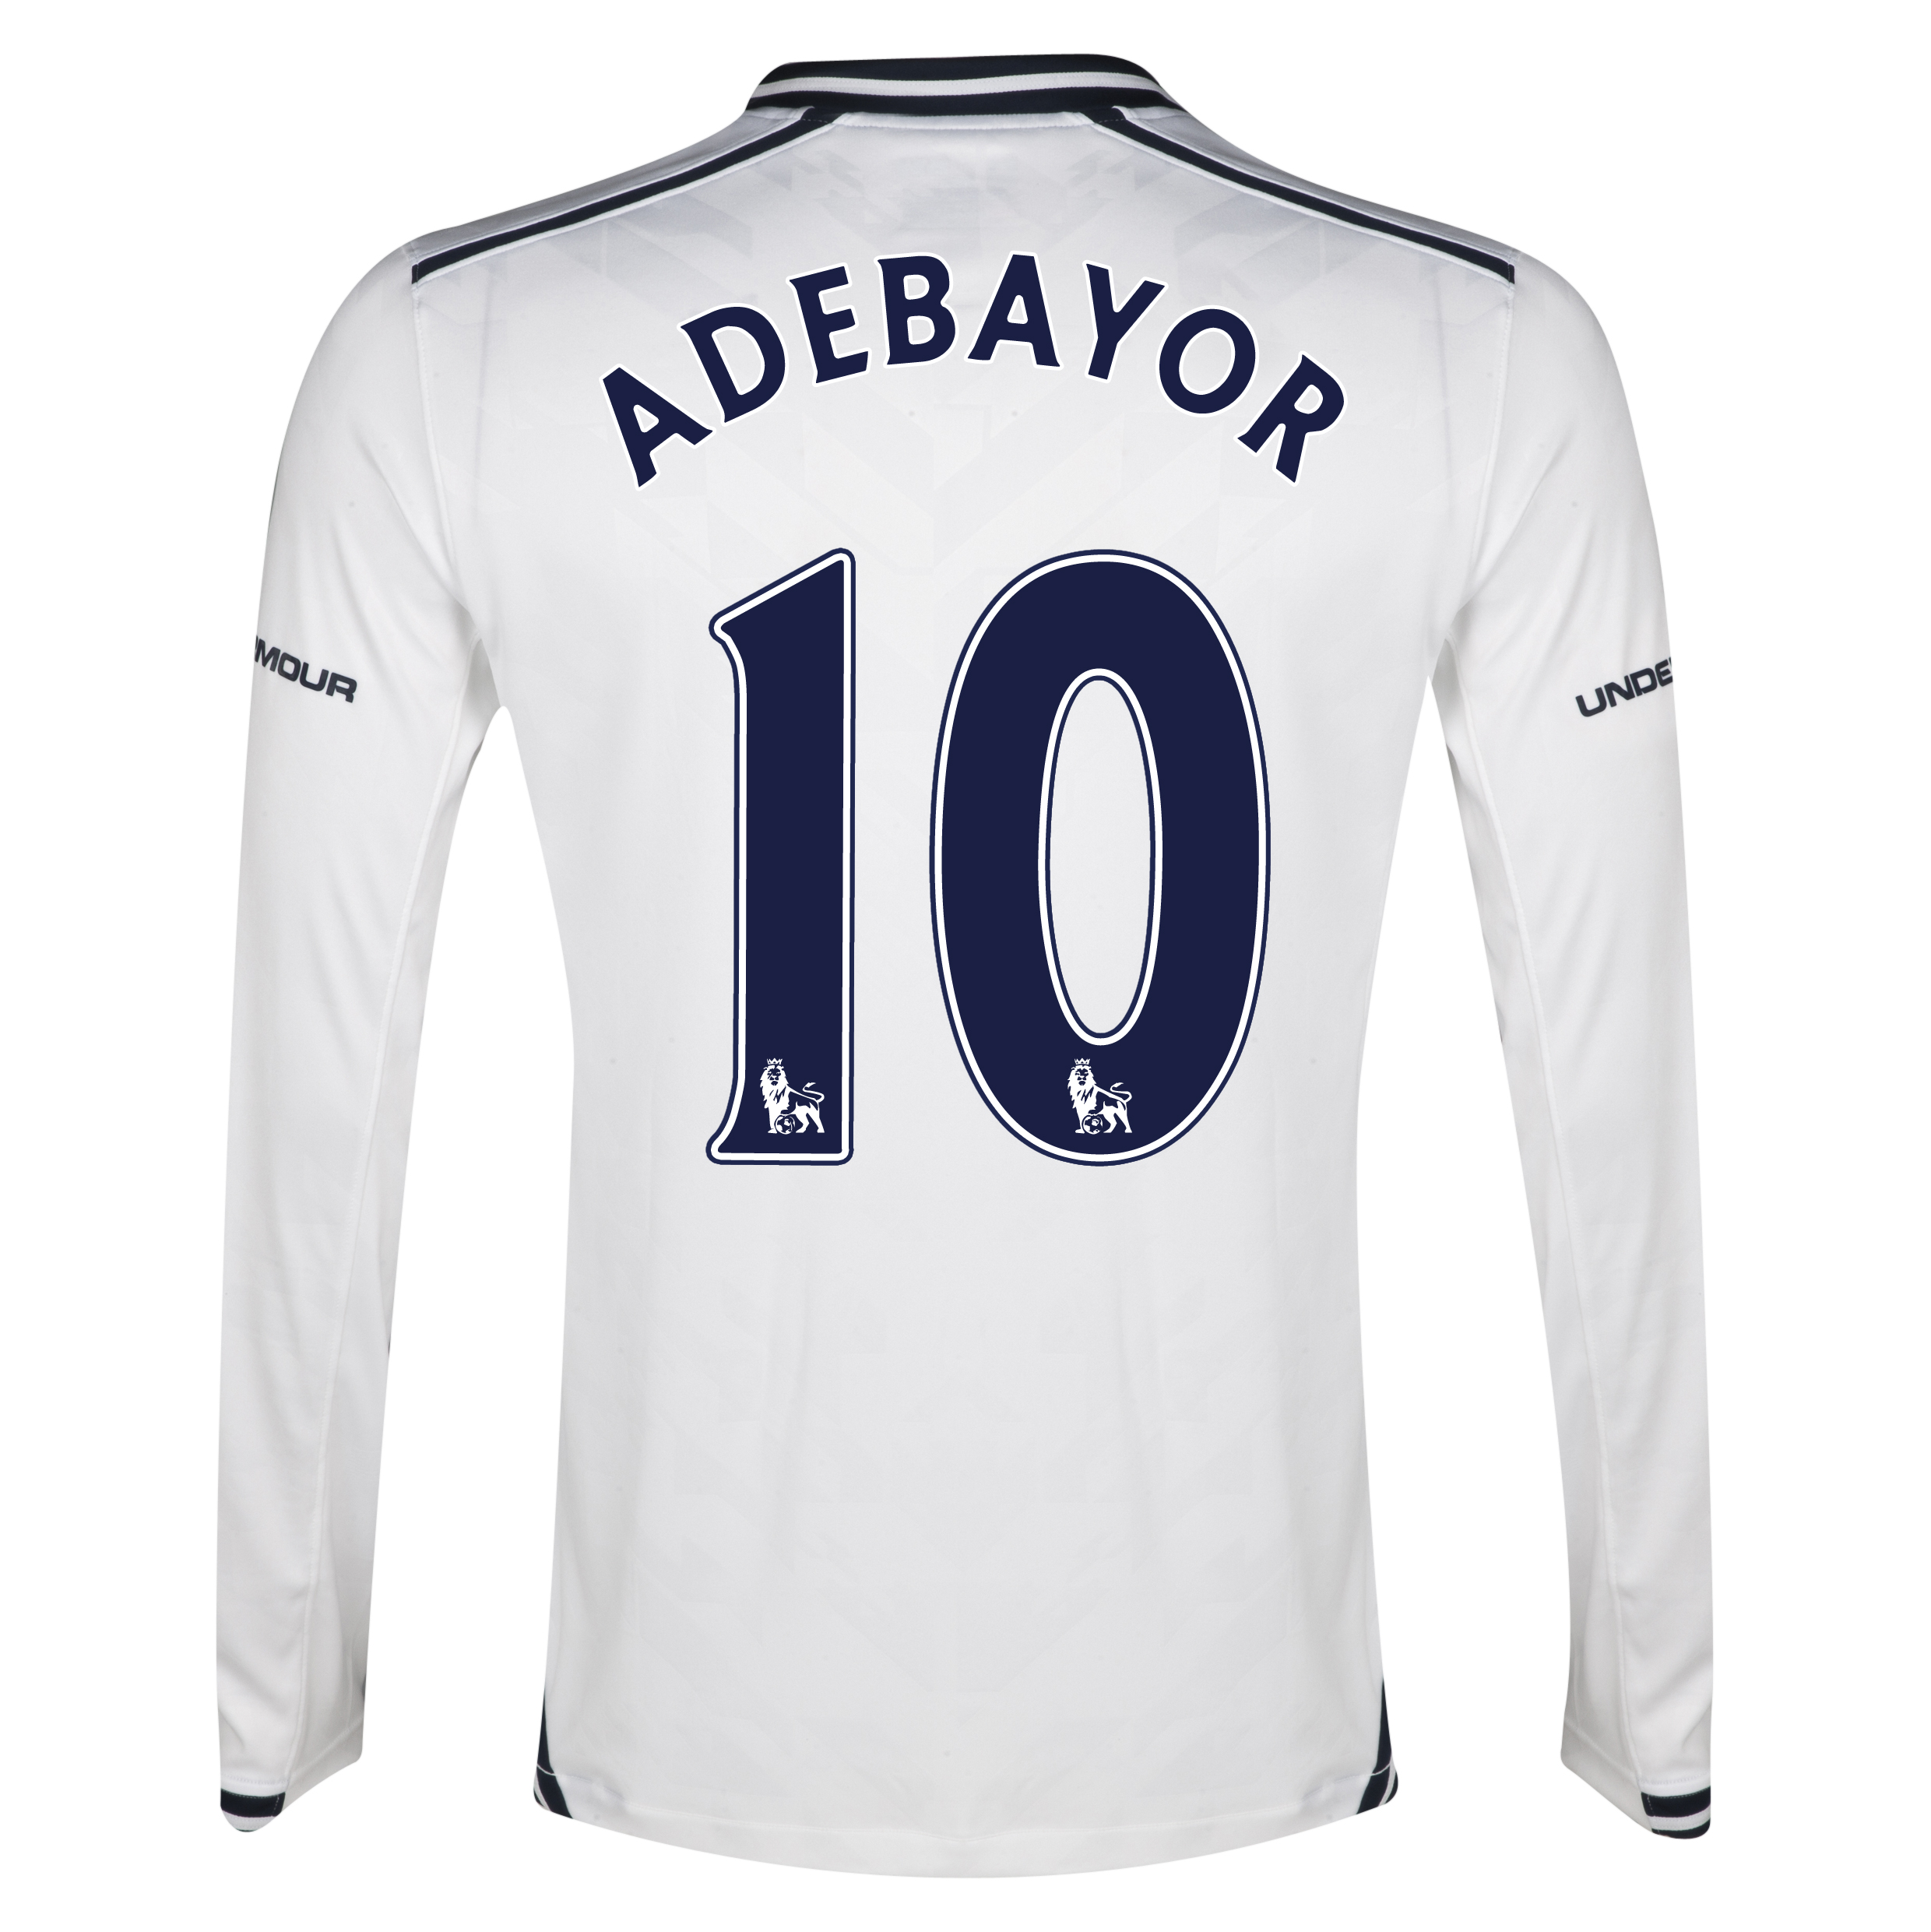 Tottenham Hotspur Home Shirt 2013/14 - Long Sleeve with Adebayor 10 printing